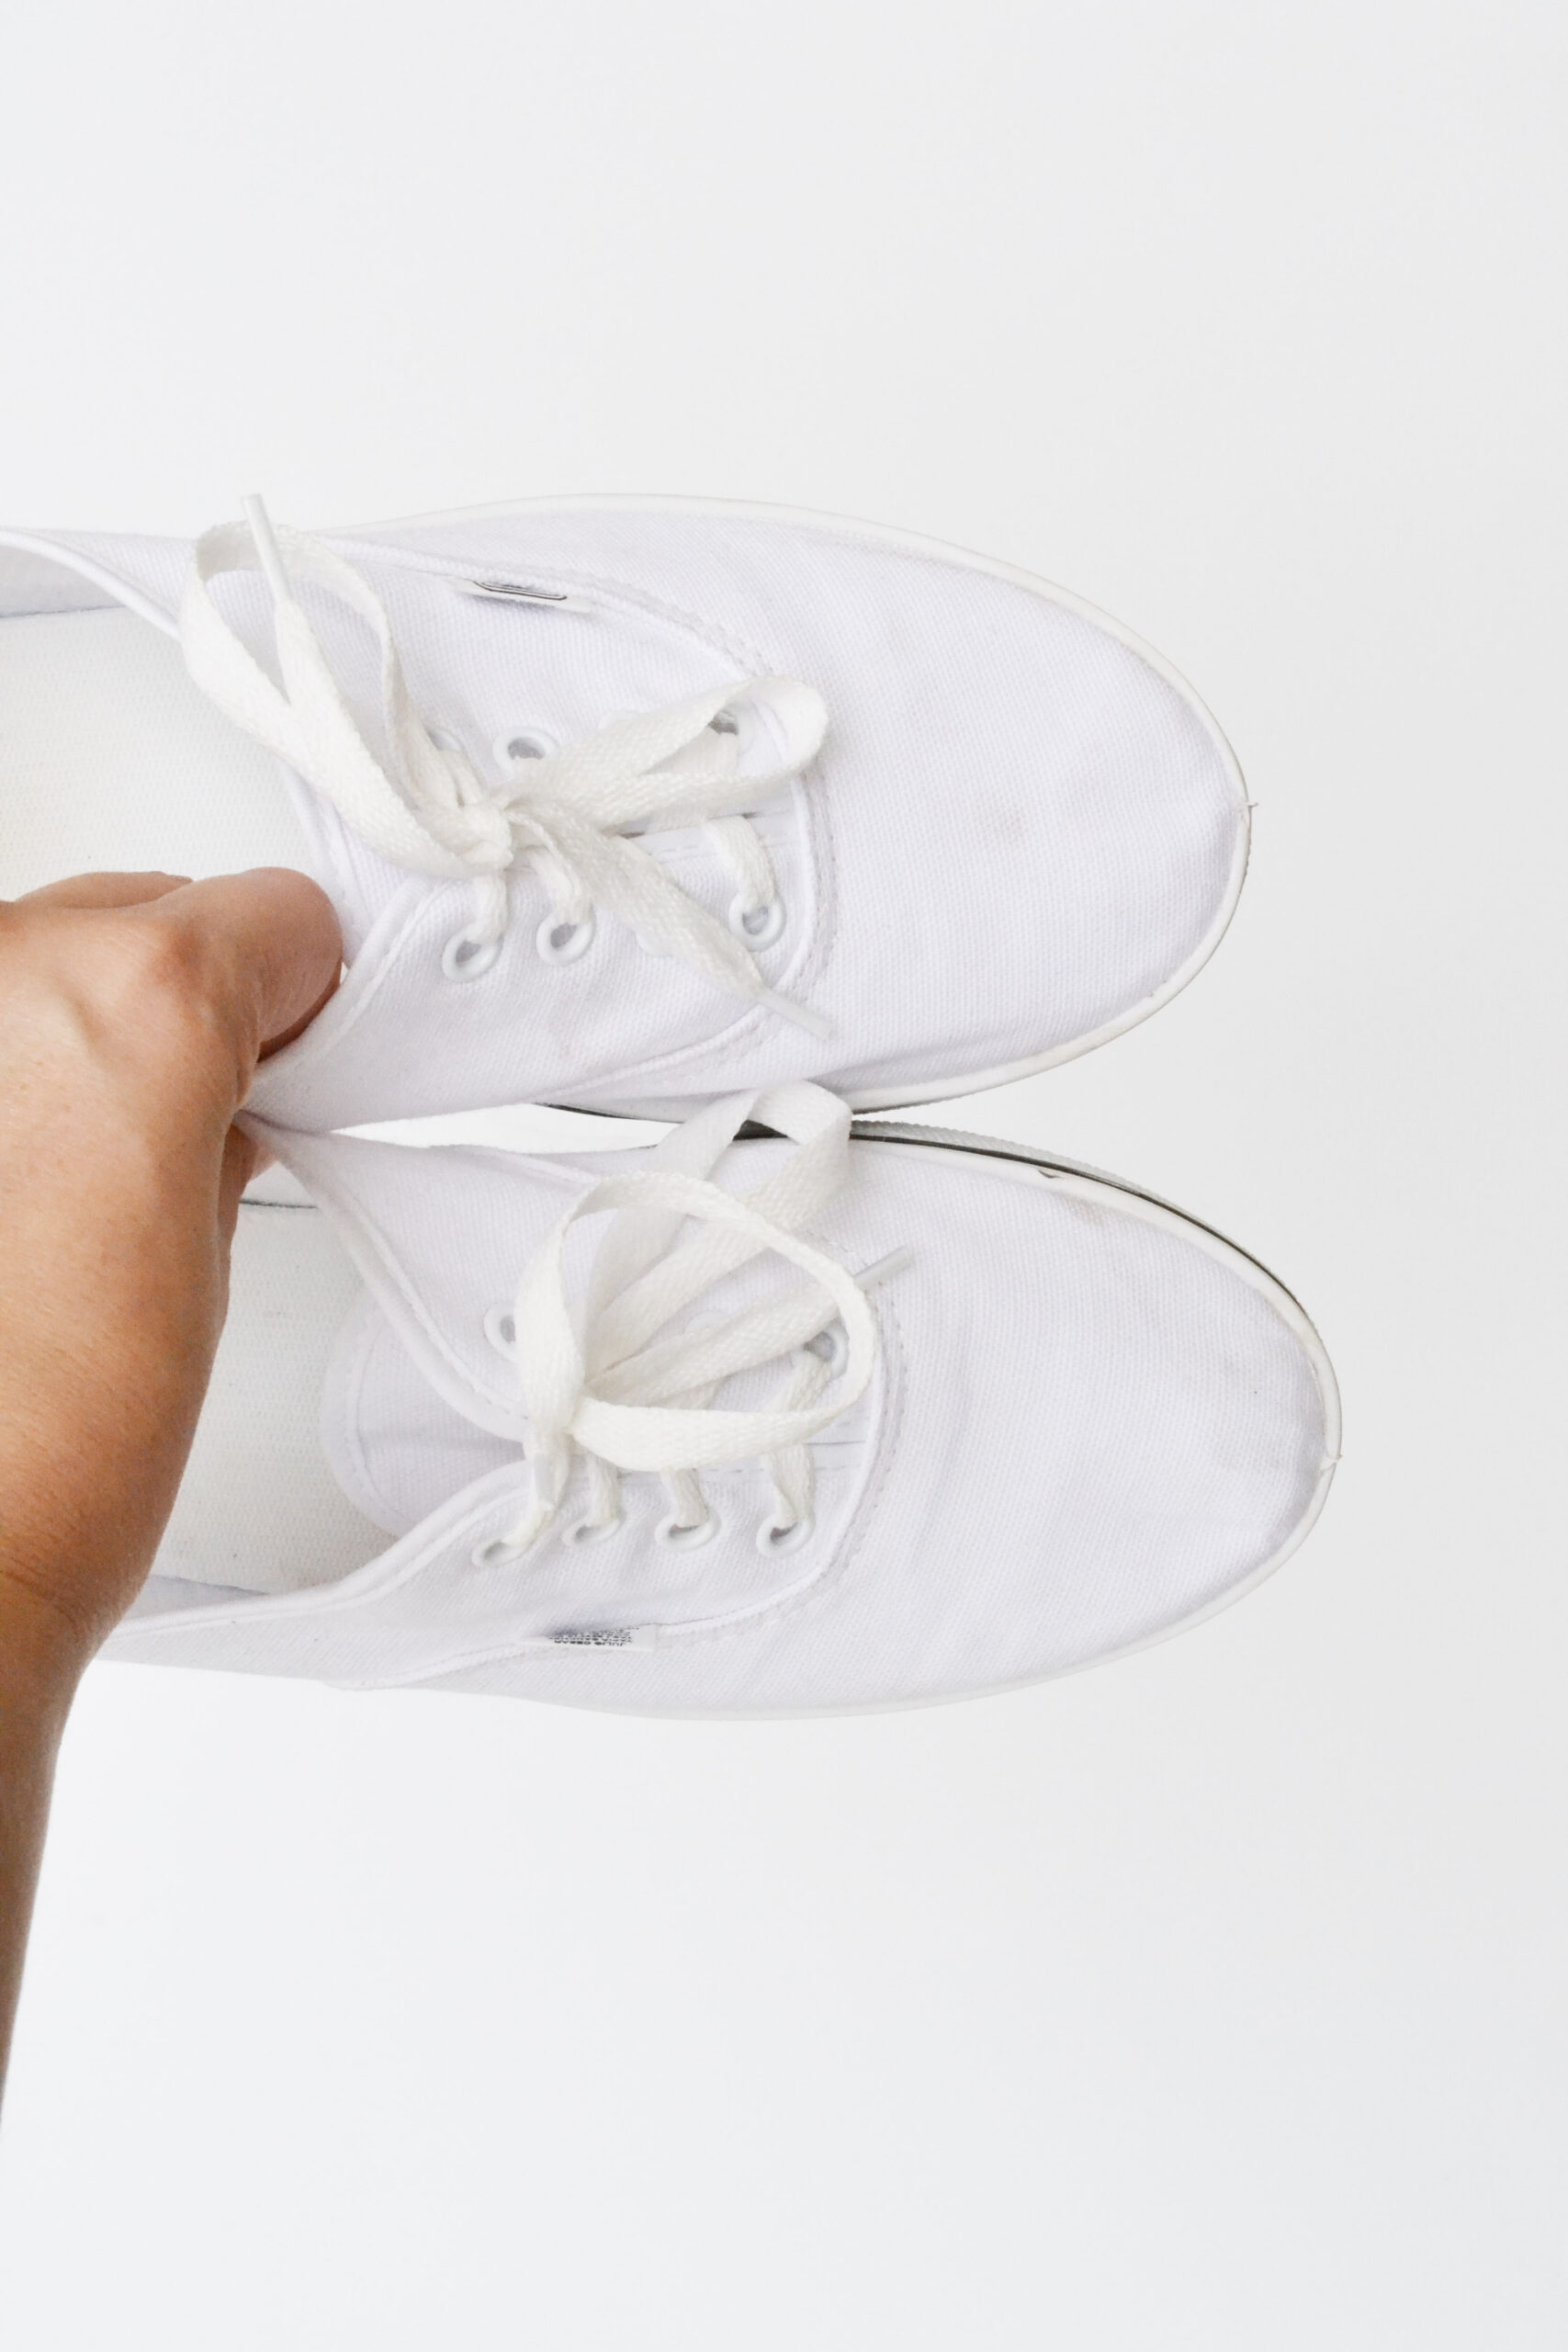 shoes, sneakers, white